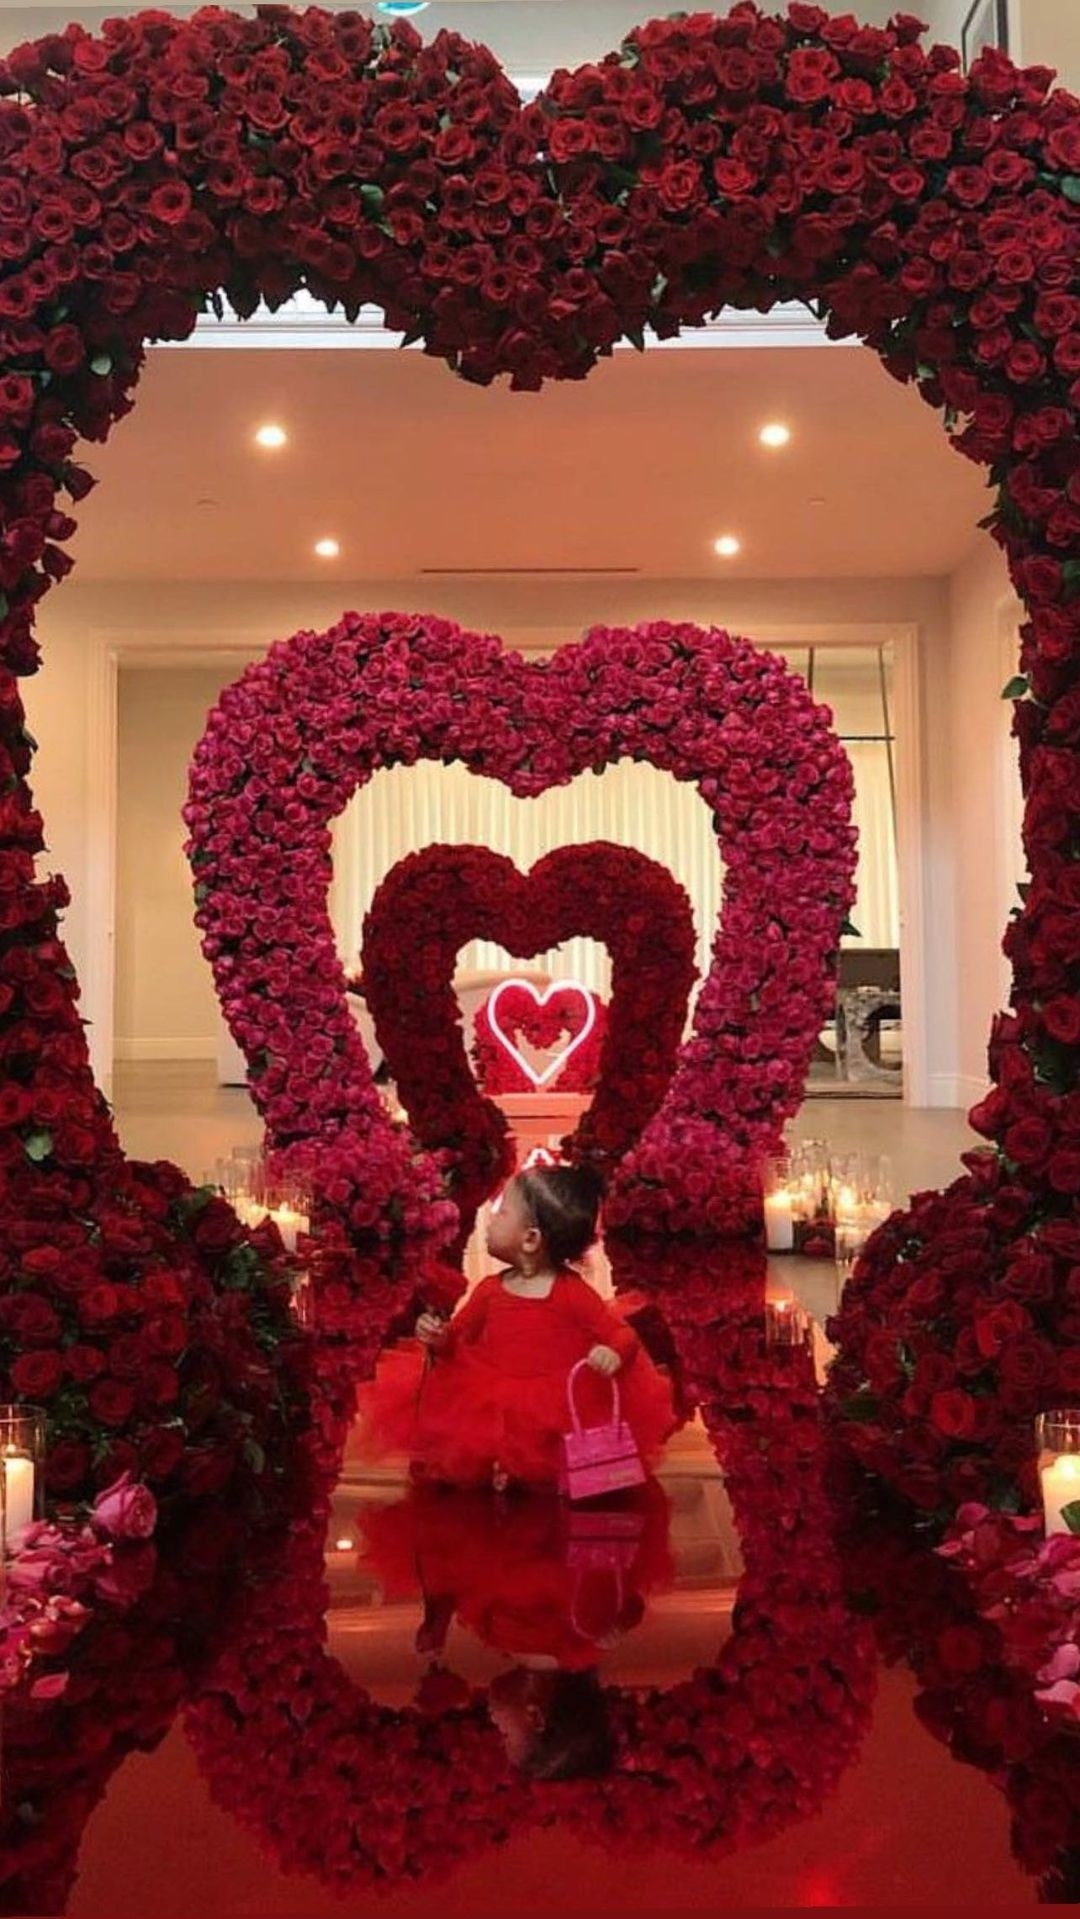 Stormi standing under one of multiple hearts shaped out of roses